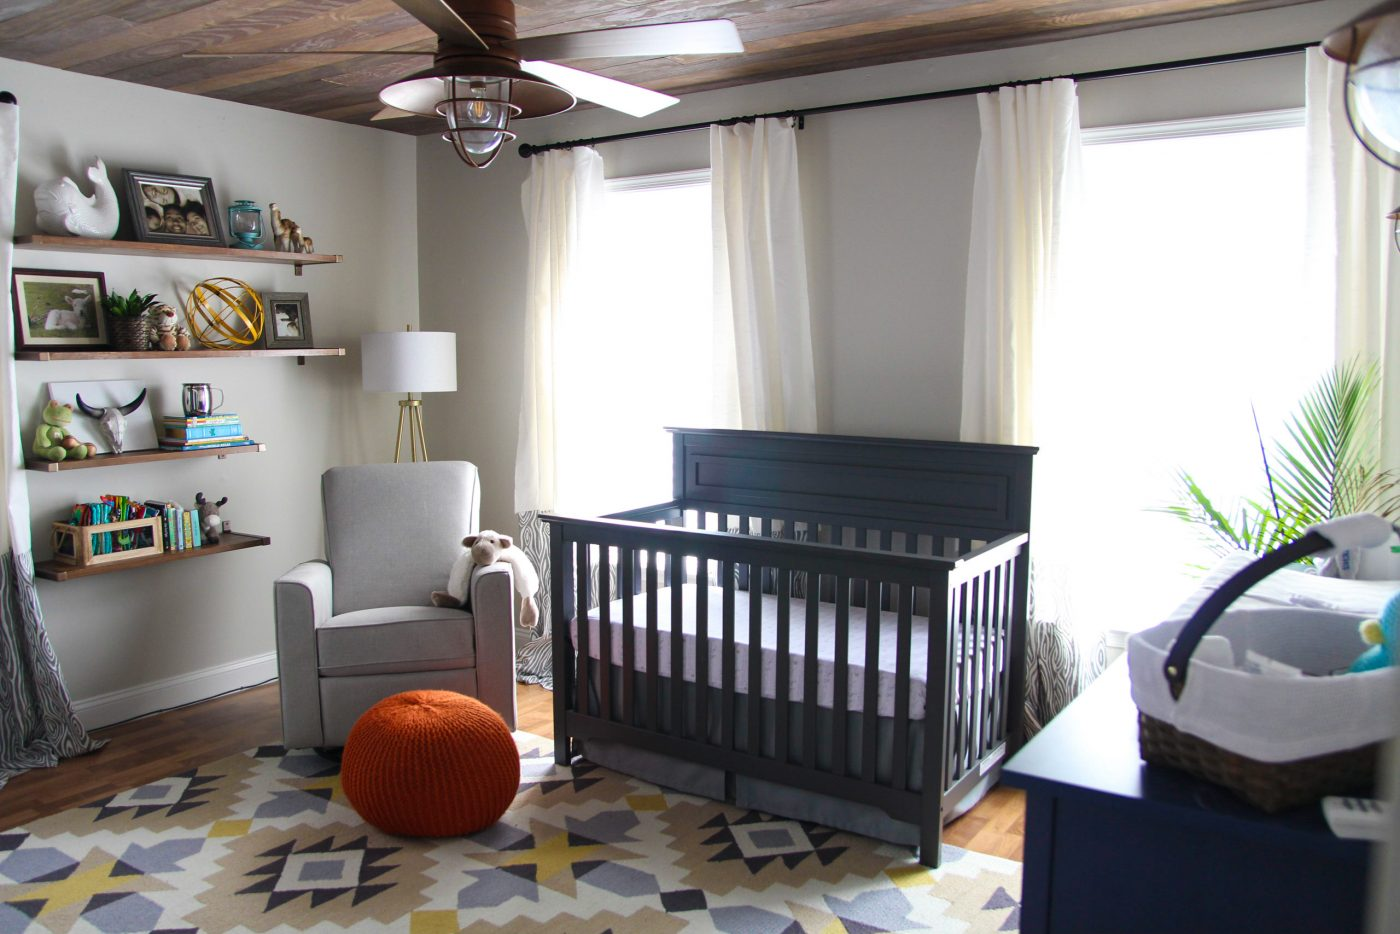 Baby Boy Nursery Decor Ideas The nursery isnu0027t completely finished (we still have some diy decor ideas  that we want to add over the next few months) but today weu0027re sharing the  progress ...